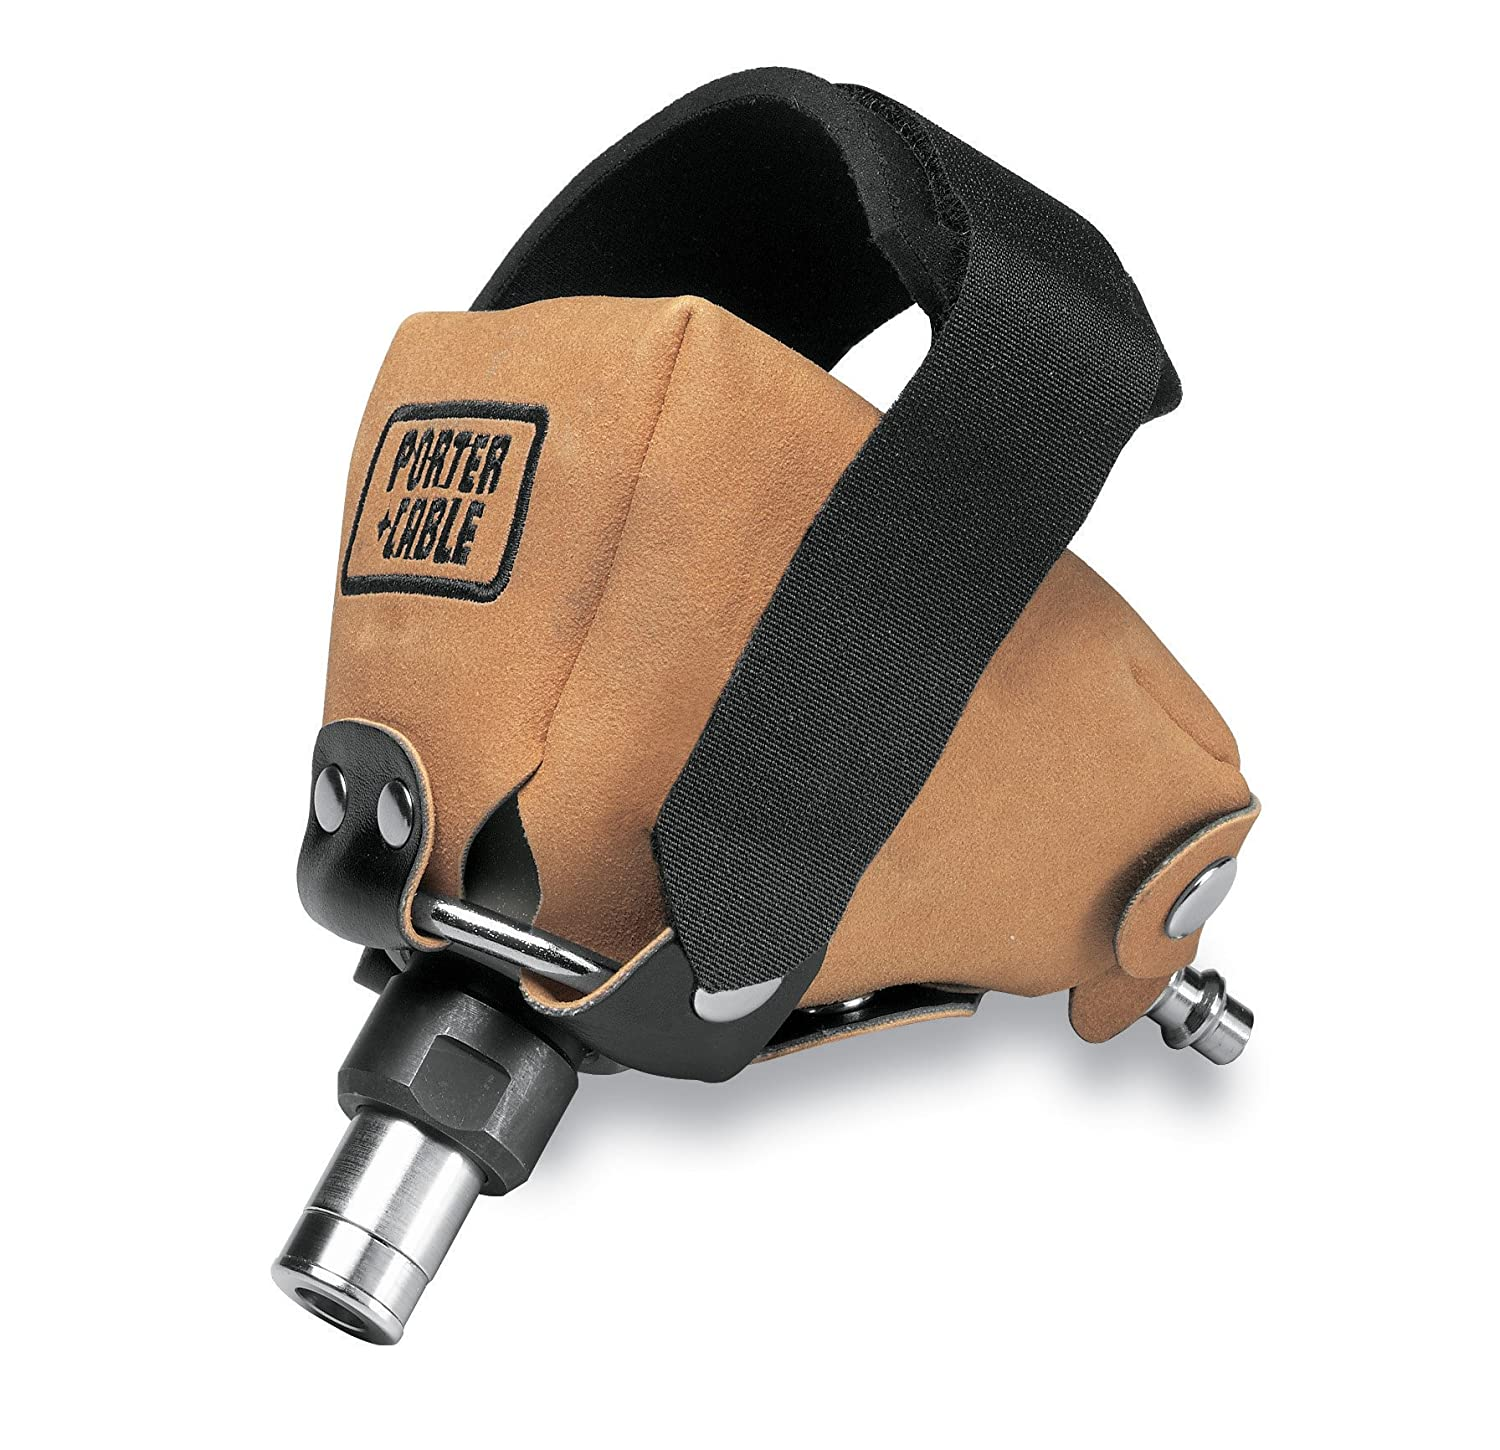 2. <strong>Porter Cable PN650 Palm Nailer - Best Palm Nailer</strong>